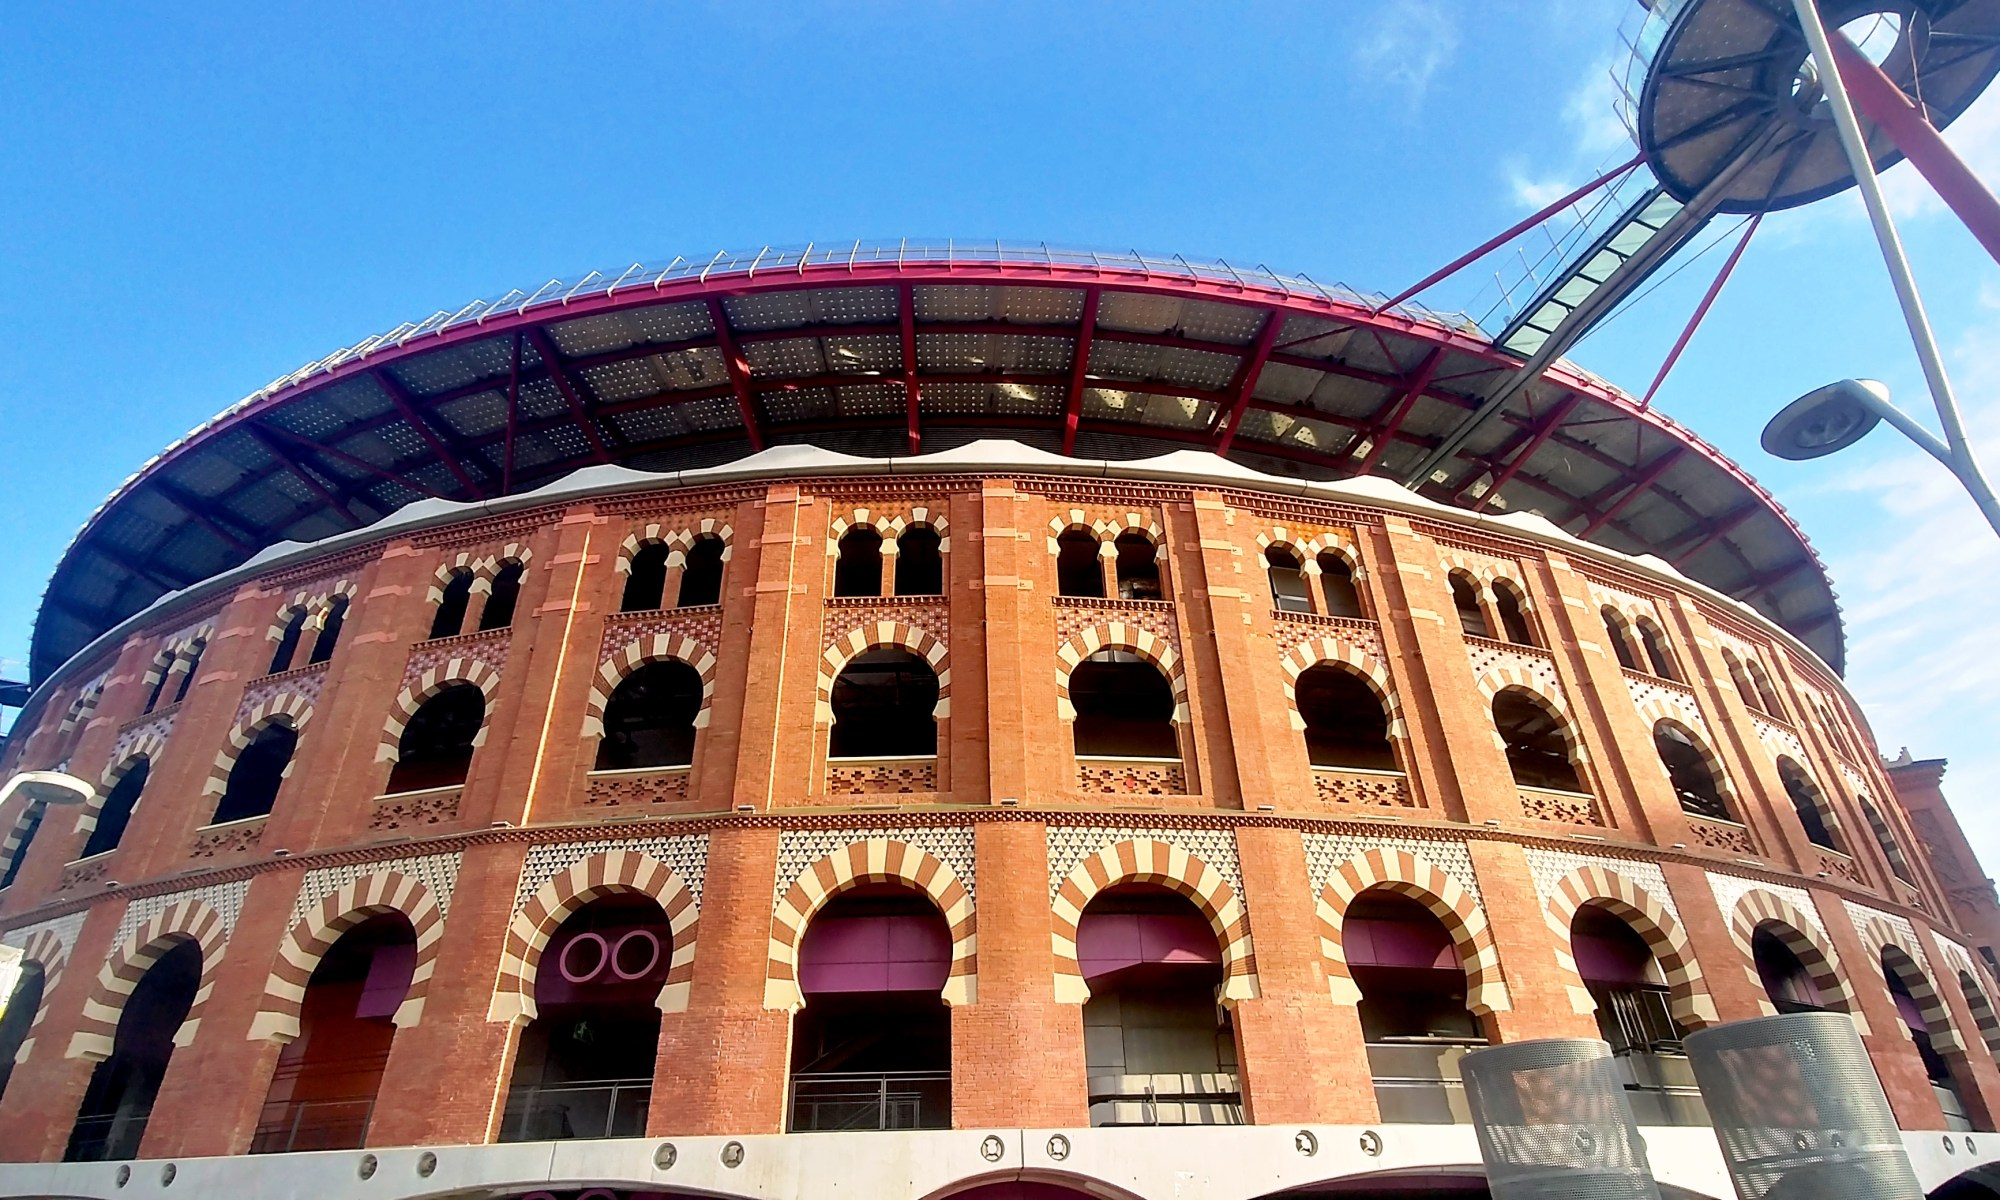 Barcelona, Spain – February 3, 2020: Las Arenas de Barcelona old bullfighting ring nowadays reconverted to a shopping mall.